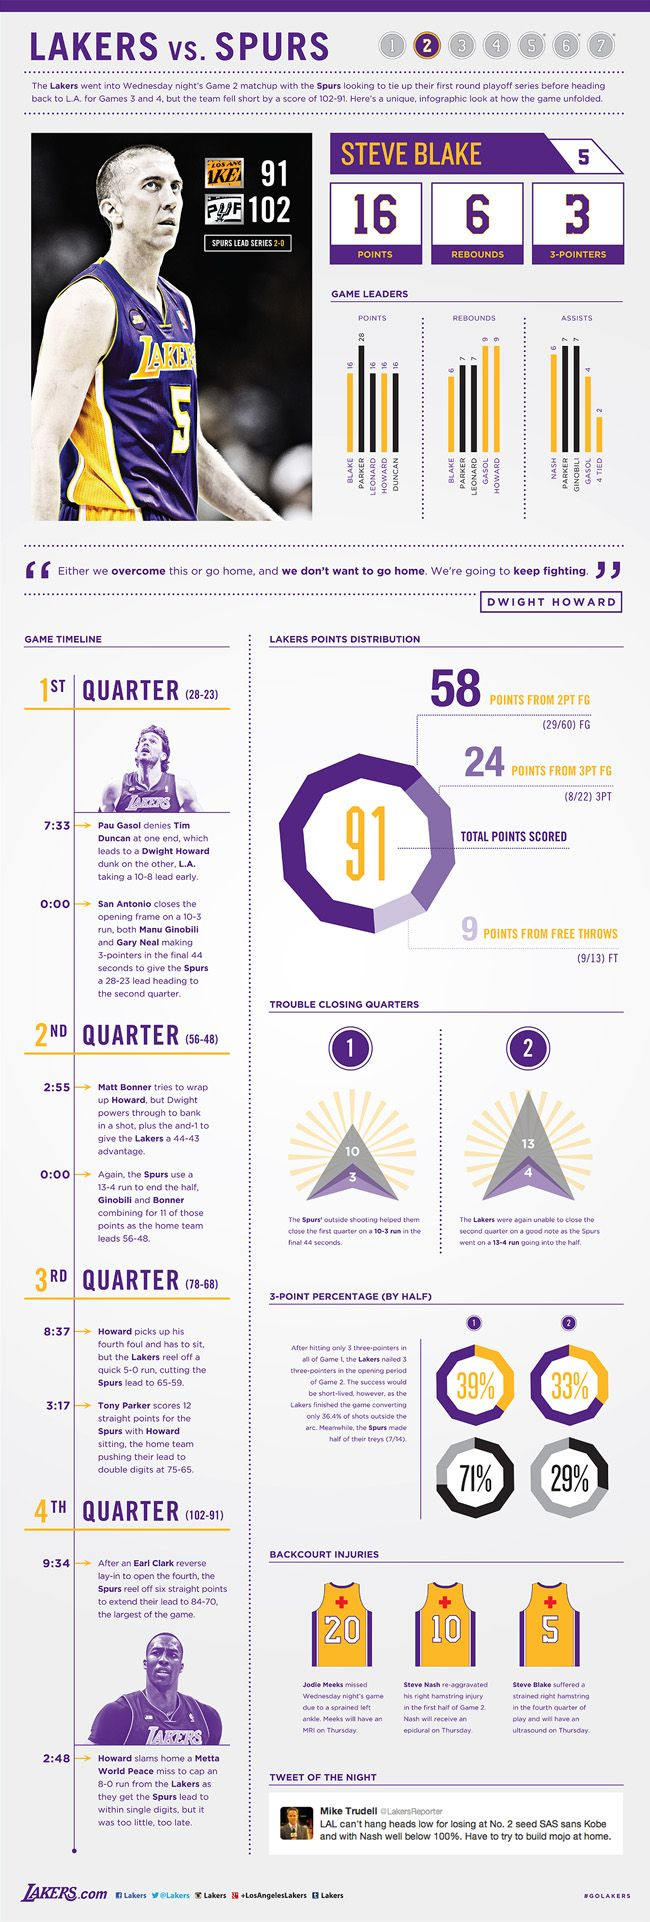 Lakers-Spurs Game 2 Infographic | THE OFFICIAL SITE OF THE LOS ANGELES LAKERS